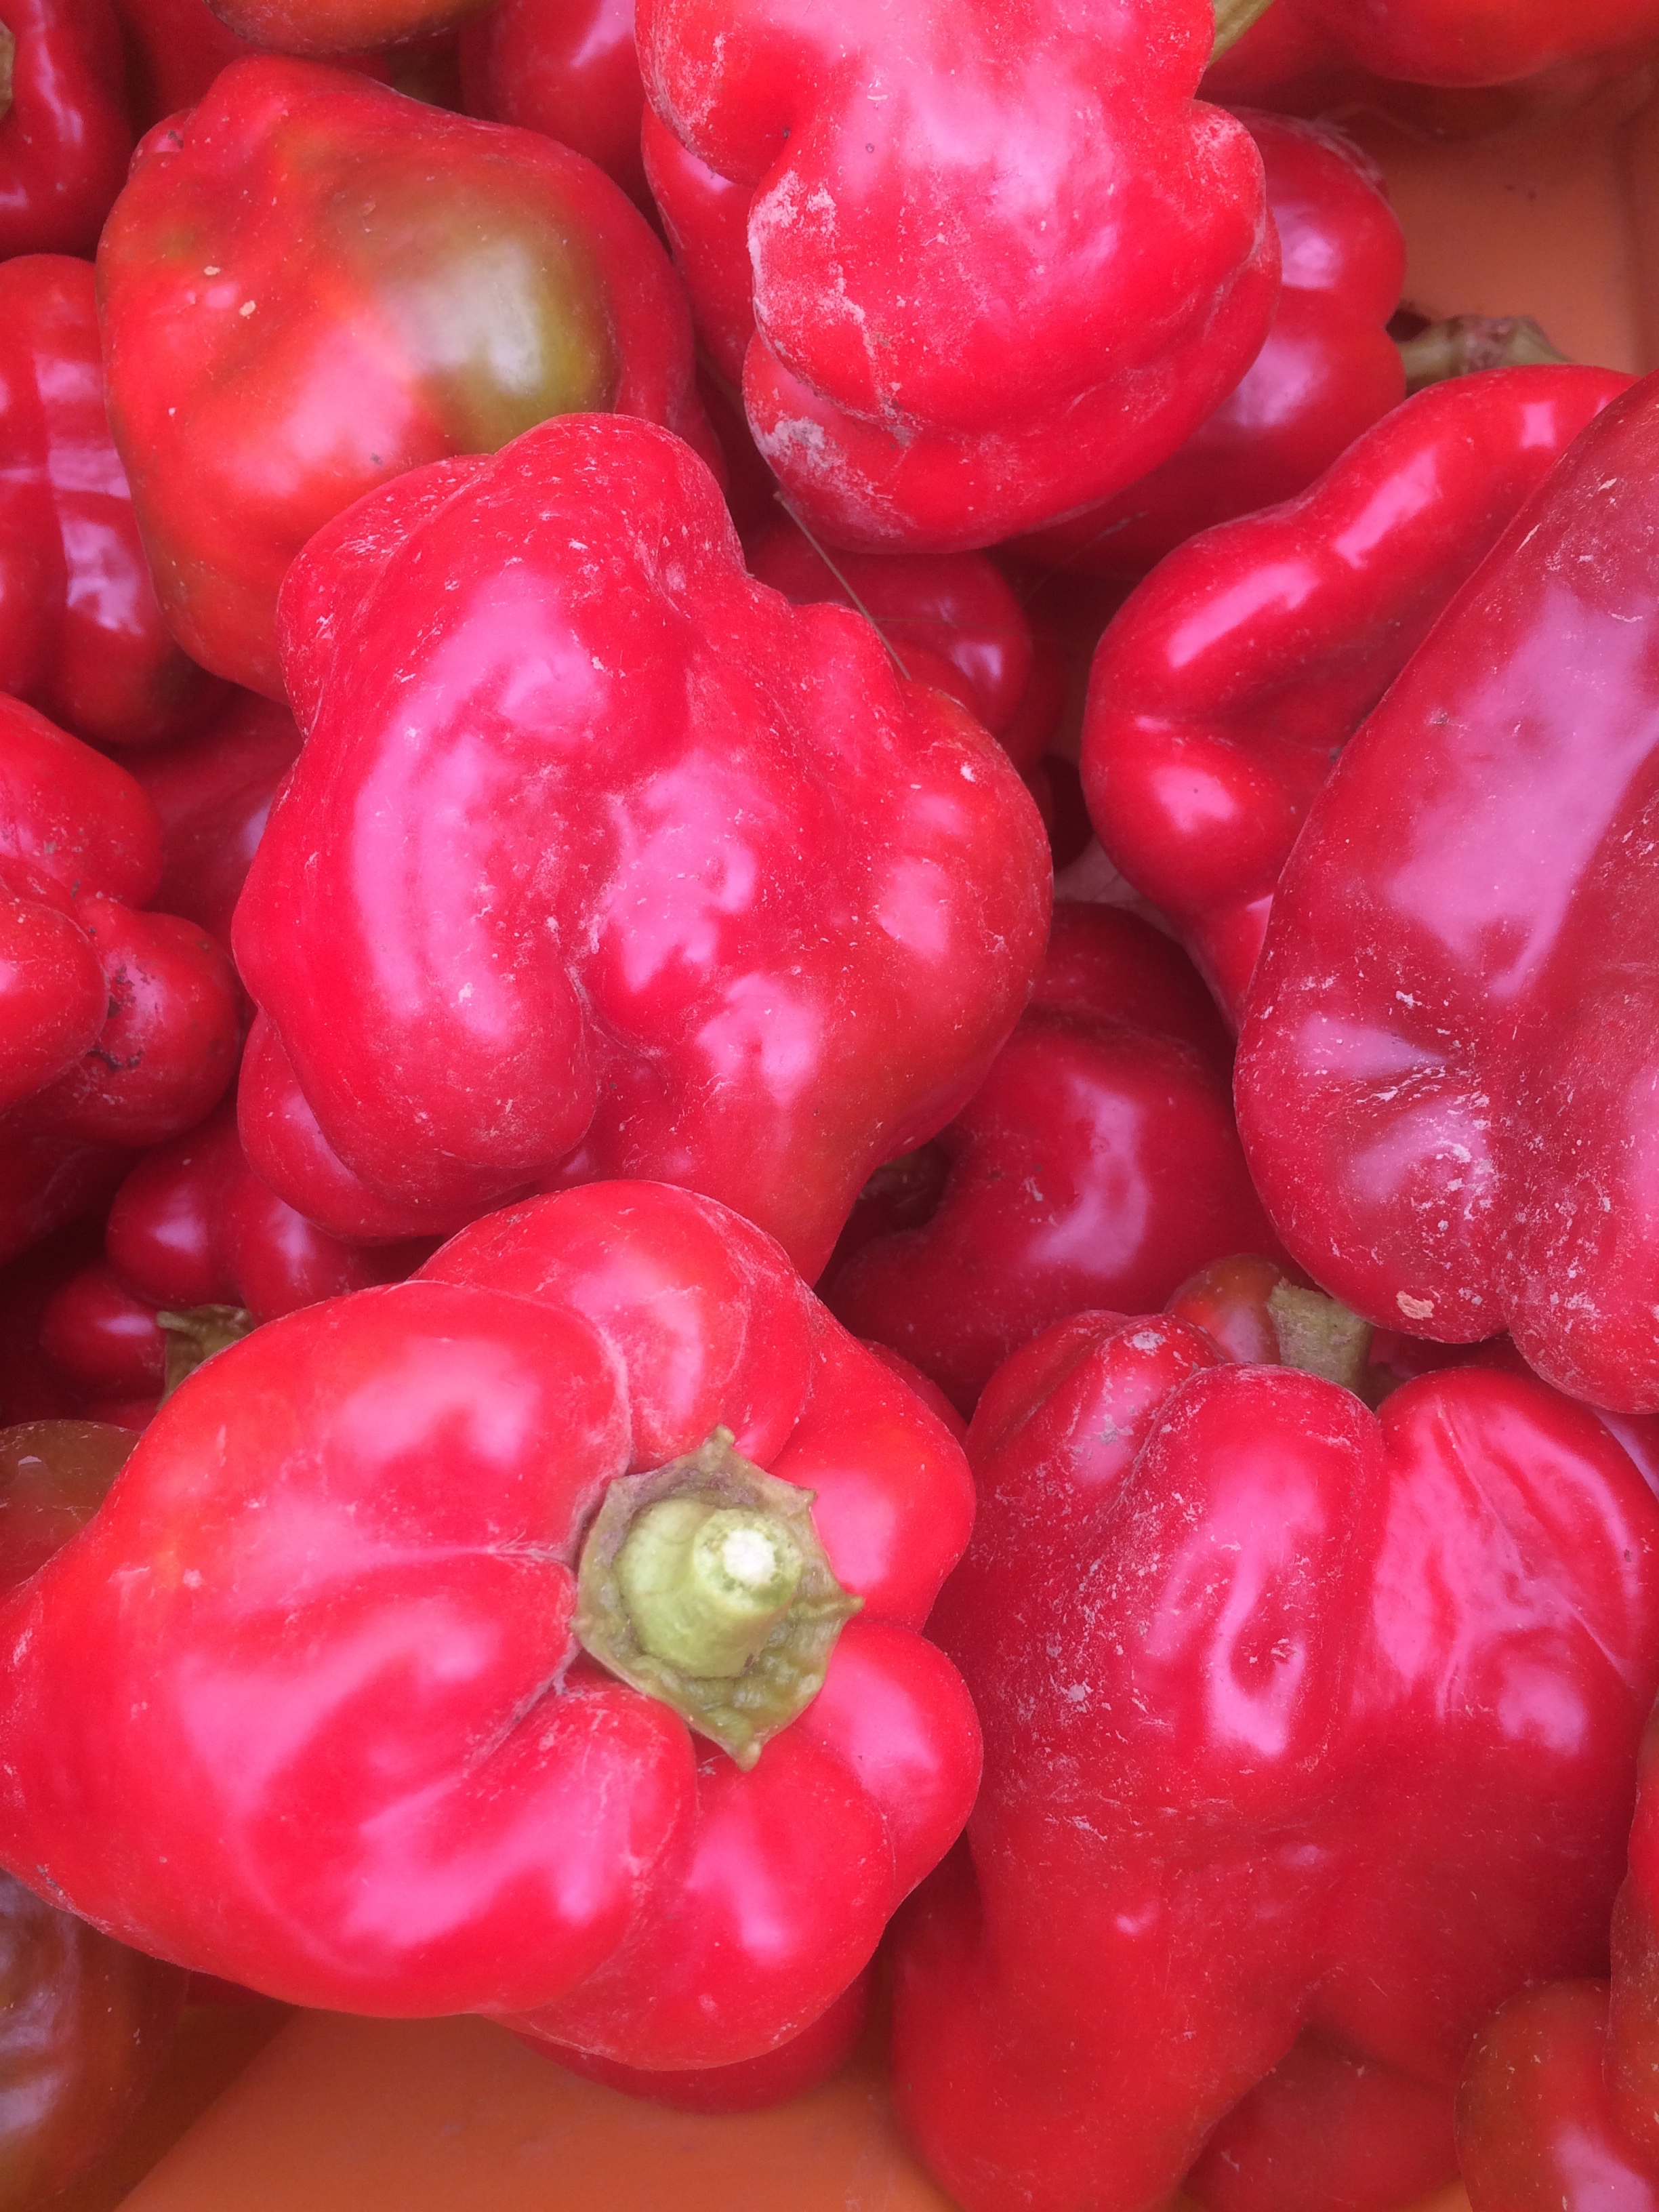 Red Bell Peppers in August